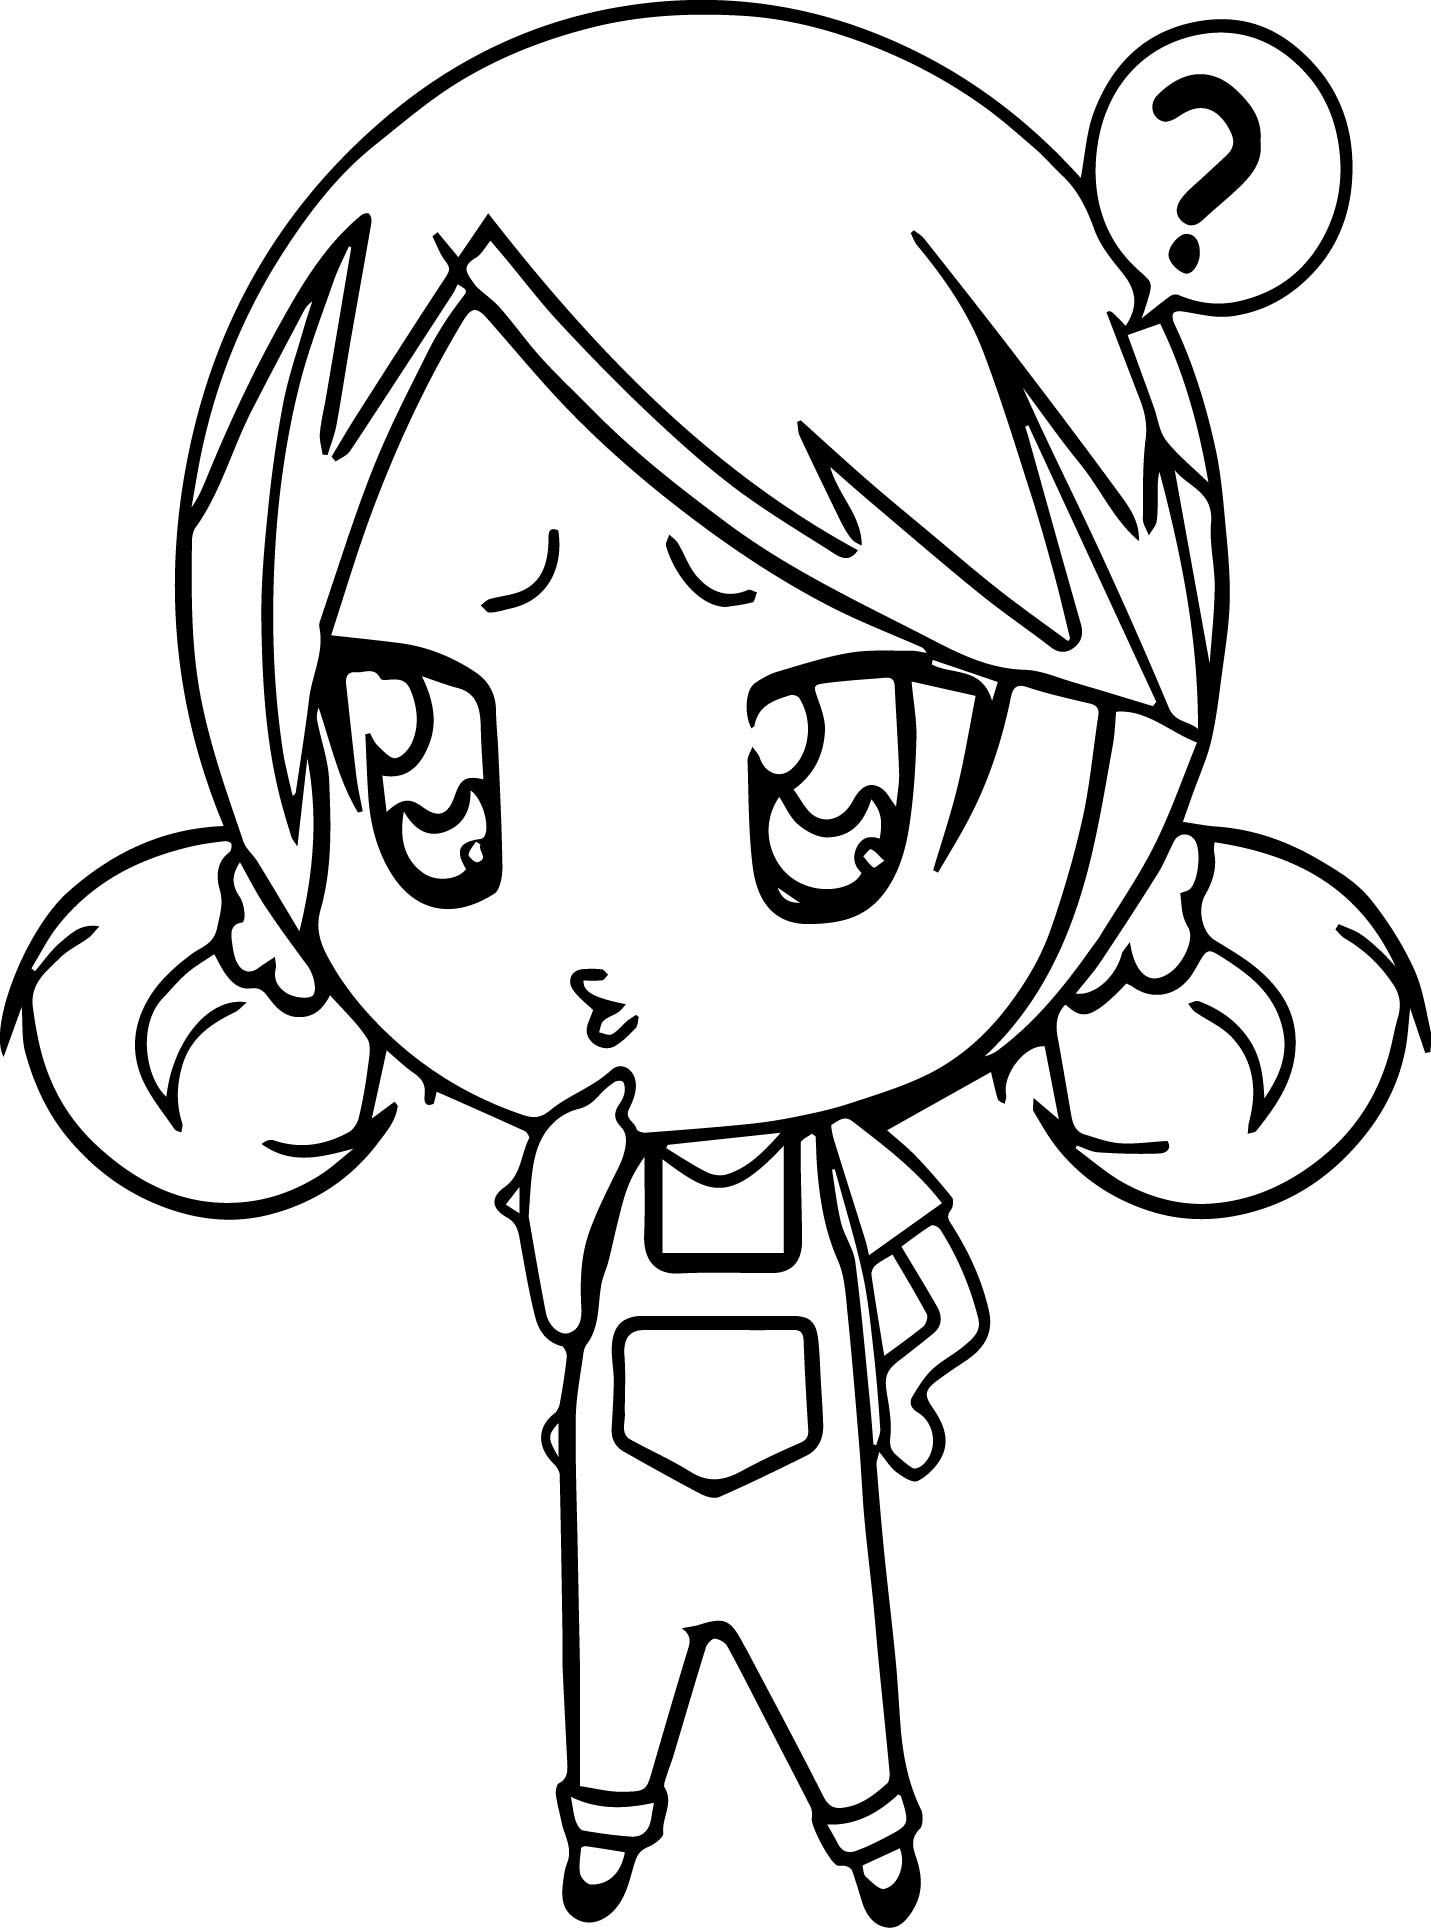 cartoon girls coloring pages cartoon girl coloring pages at getdrawings free download cartoon girls pages coloring